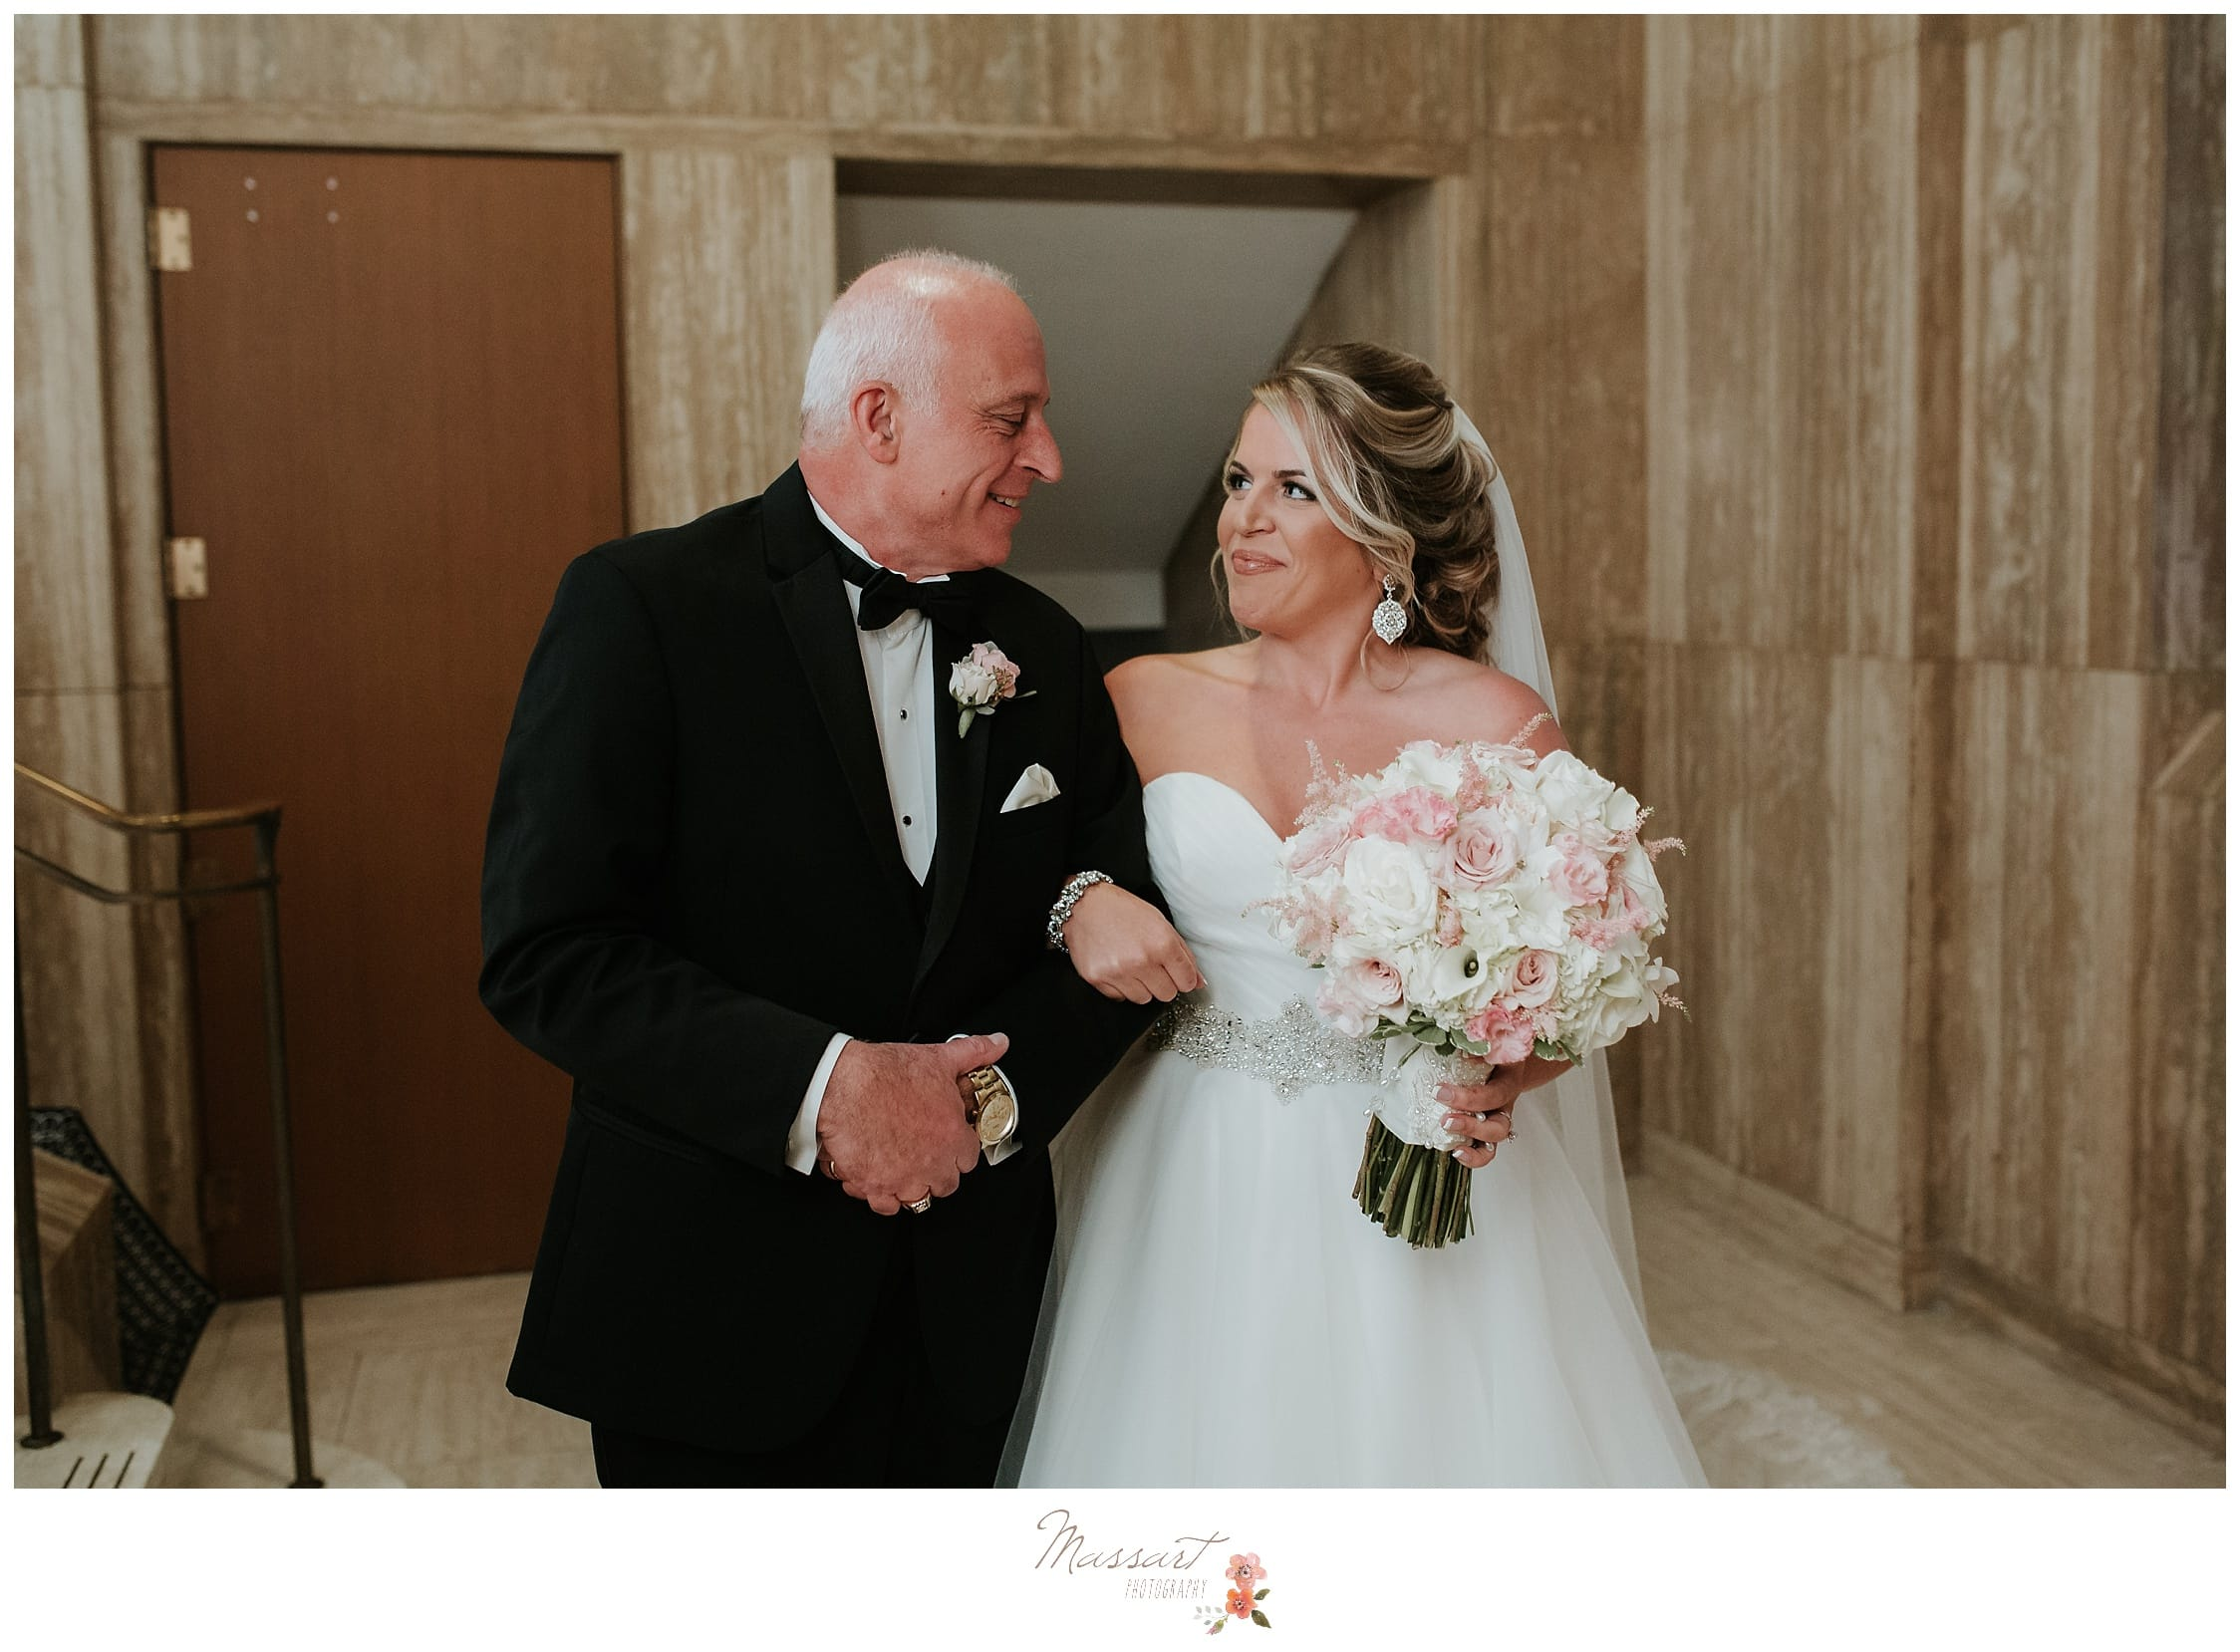 The bride and her father about to walk down the aisle photographed by Massart Photography RI